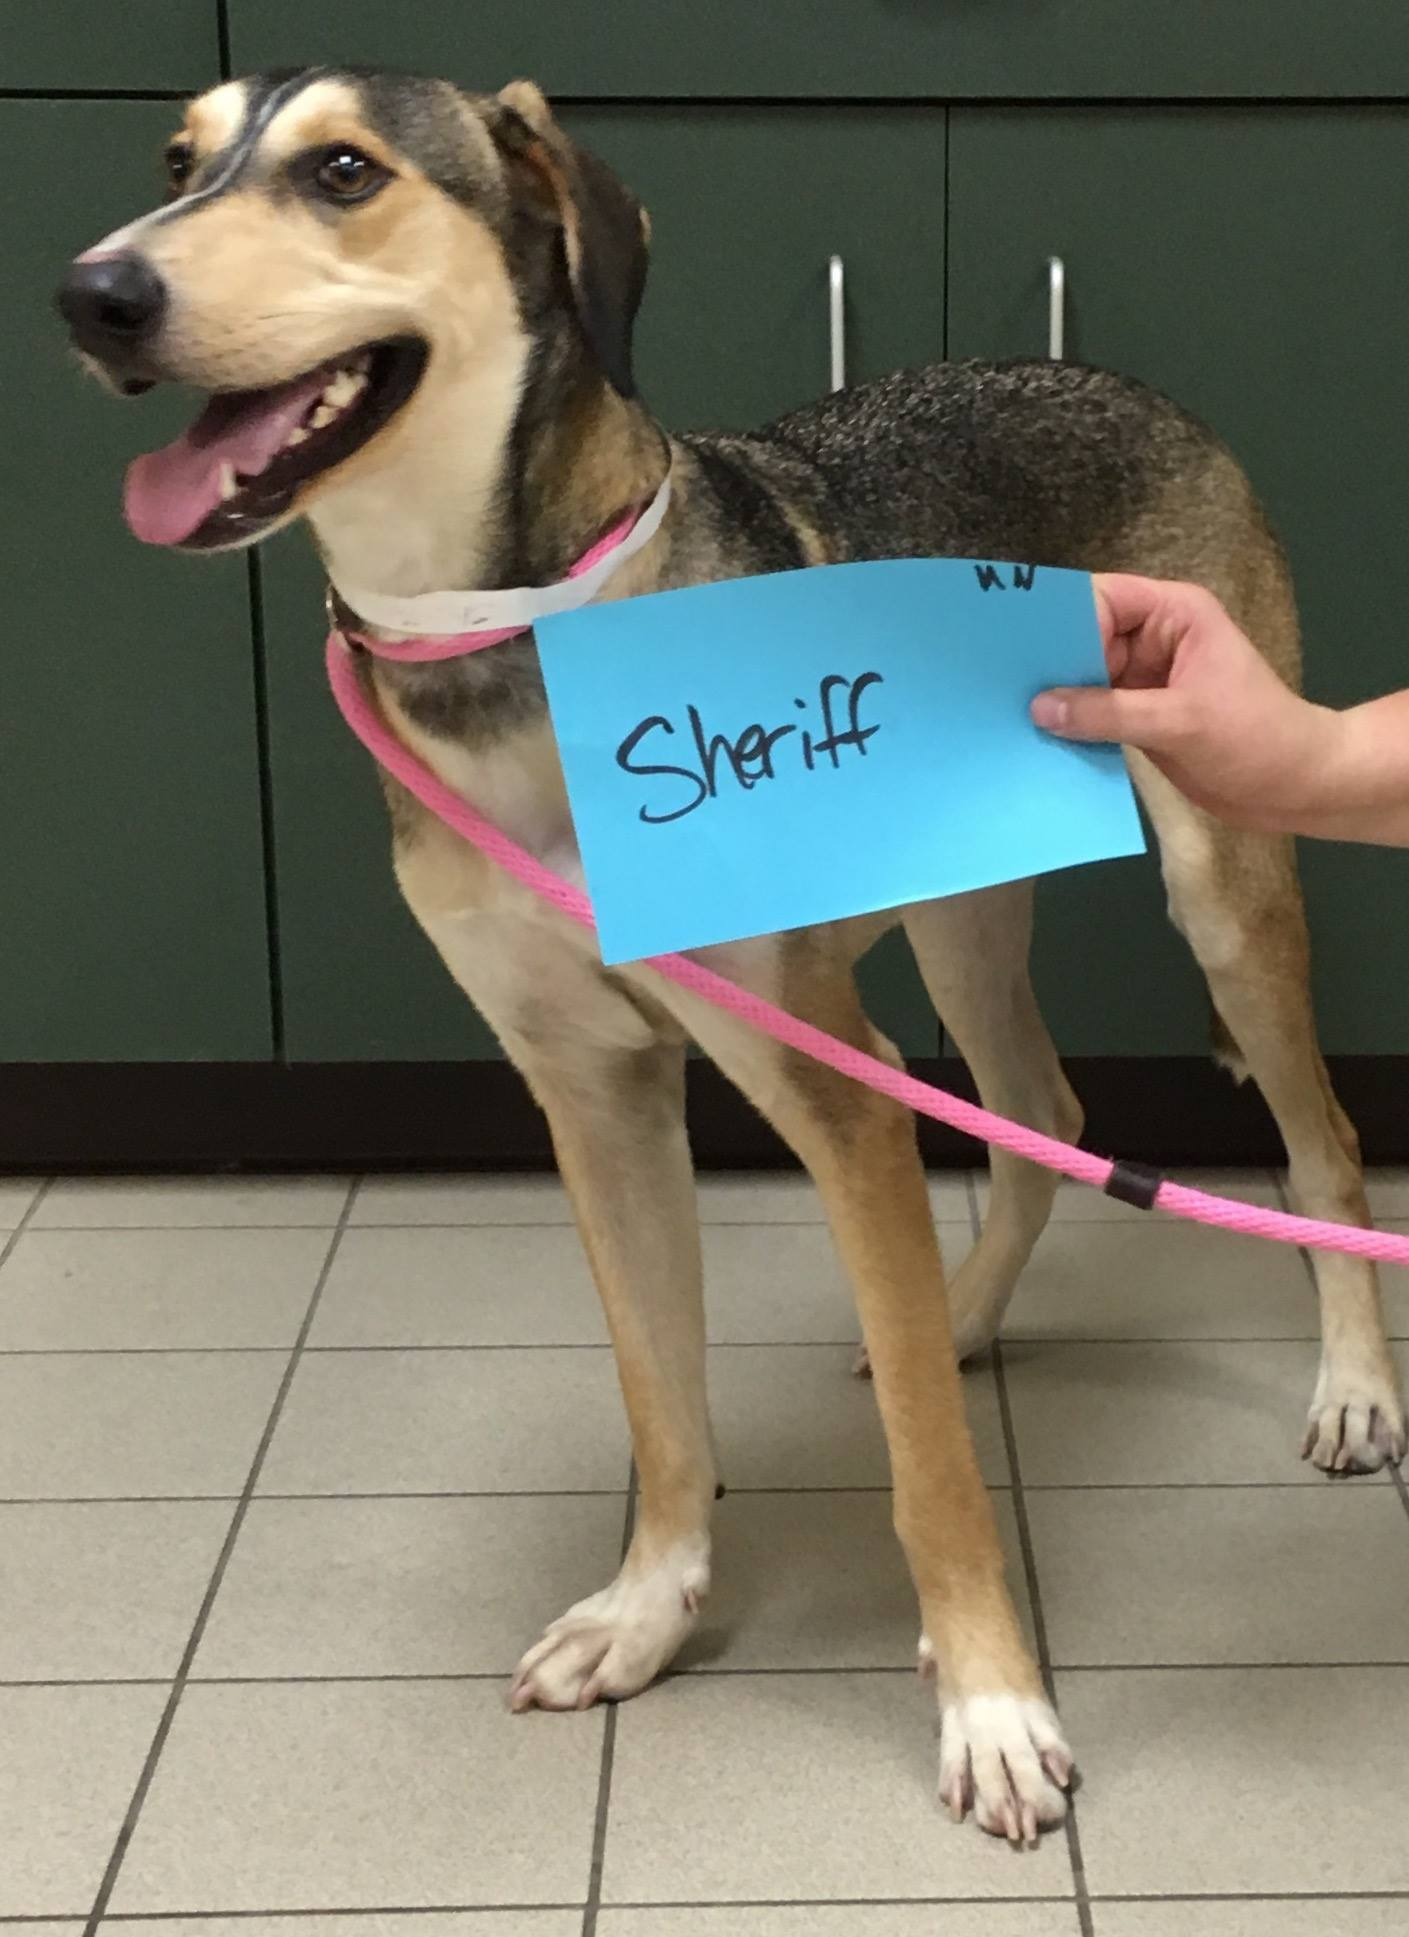 Sheriff is available to meet you at the Cherryland Humane Society.